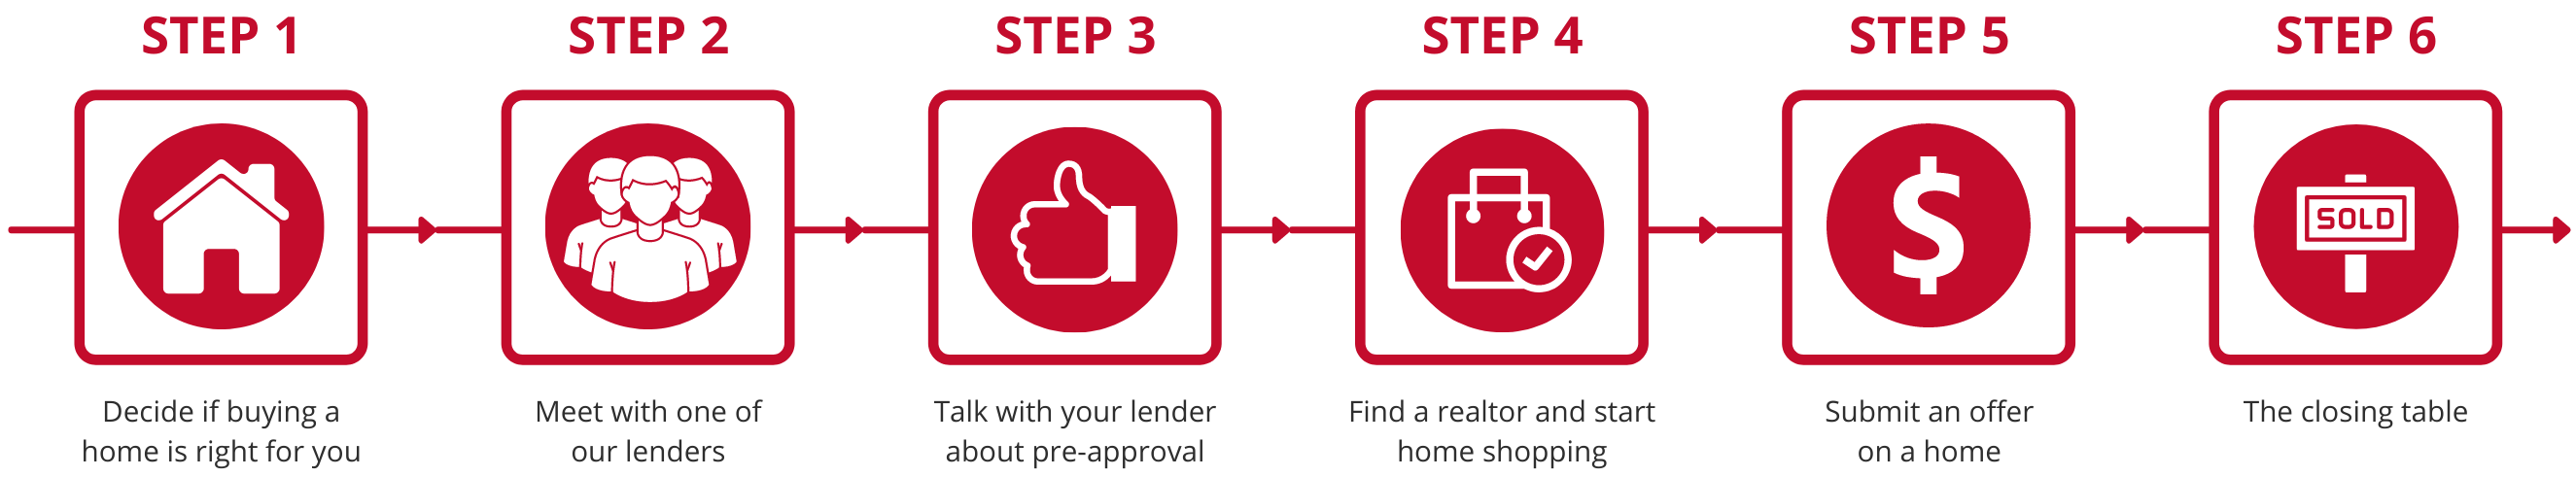 Home buying process graphic